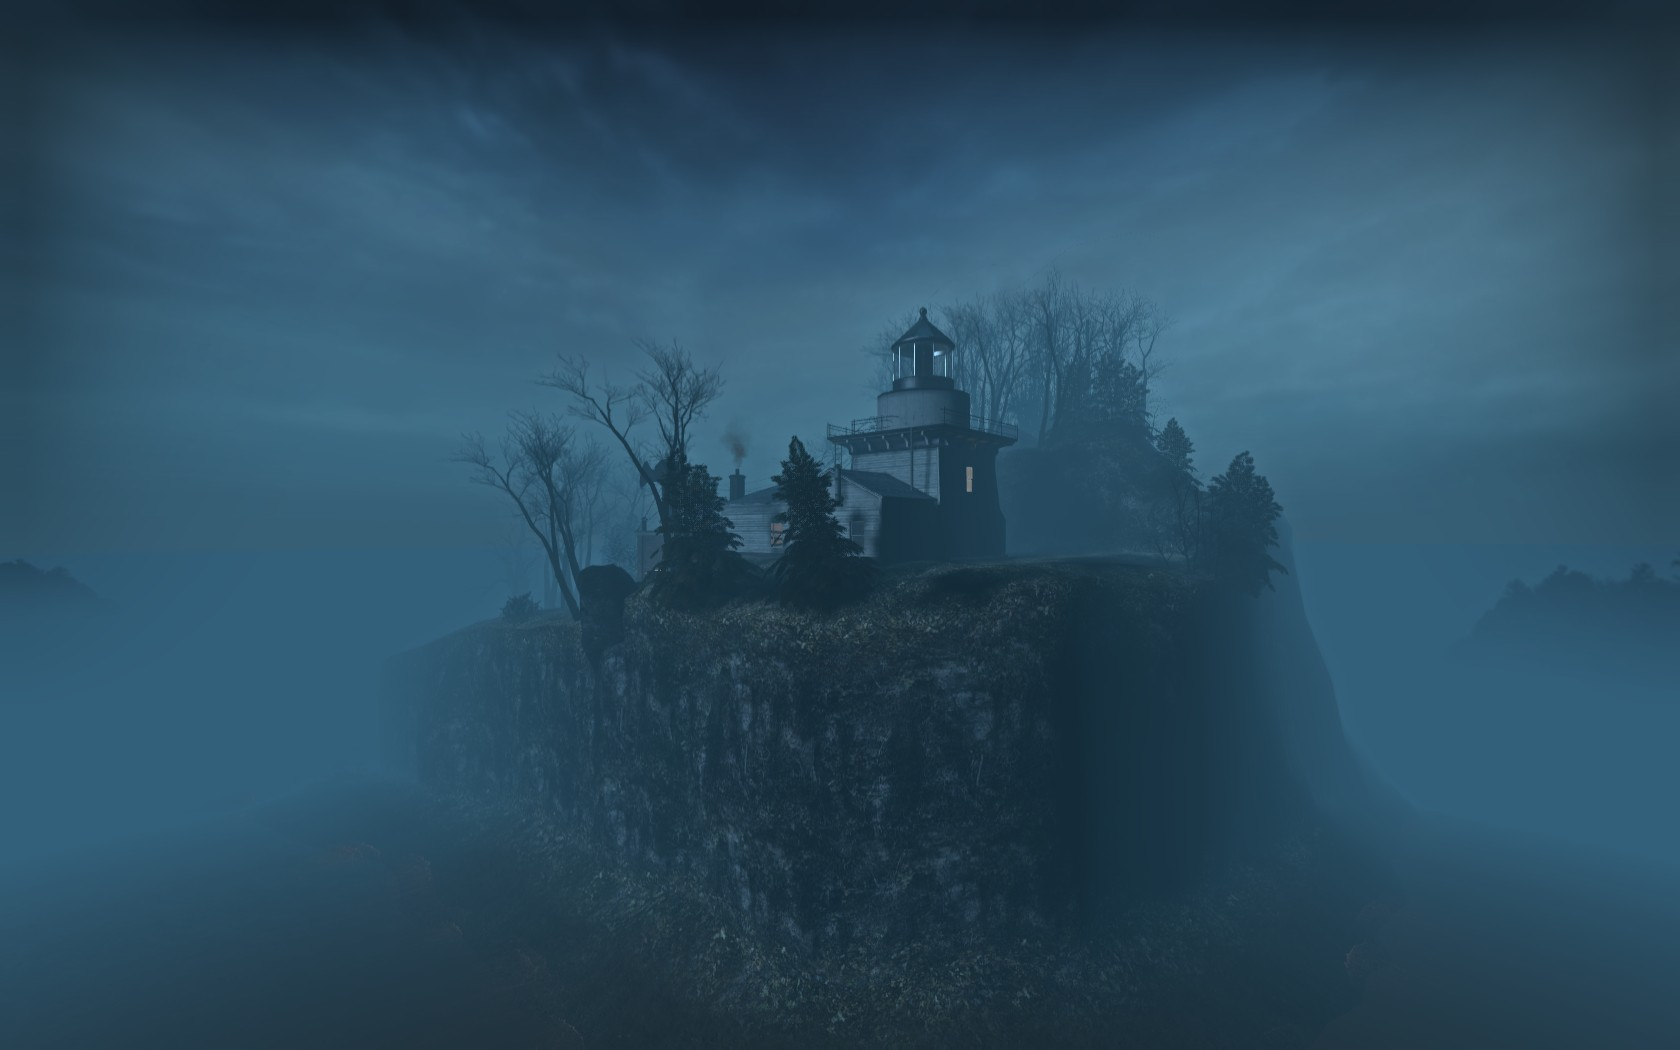 L4d sv lighthouse0061.png